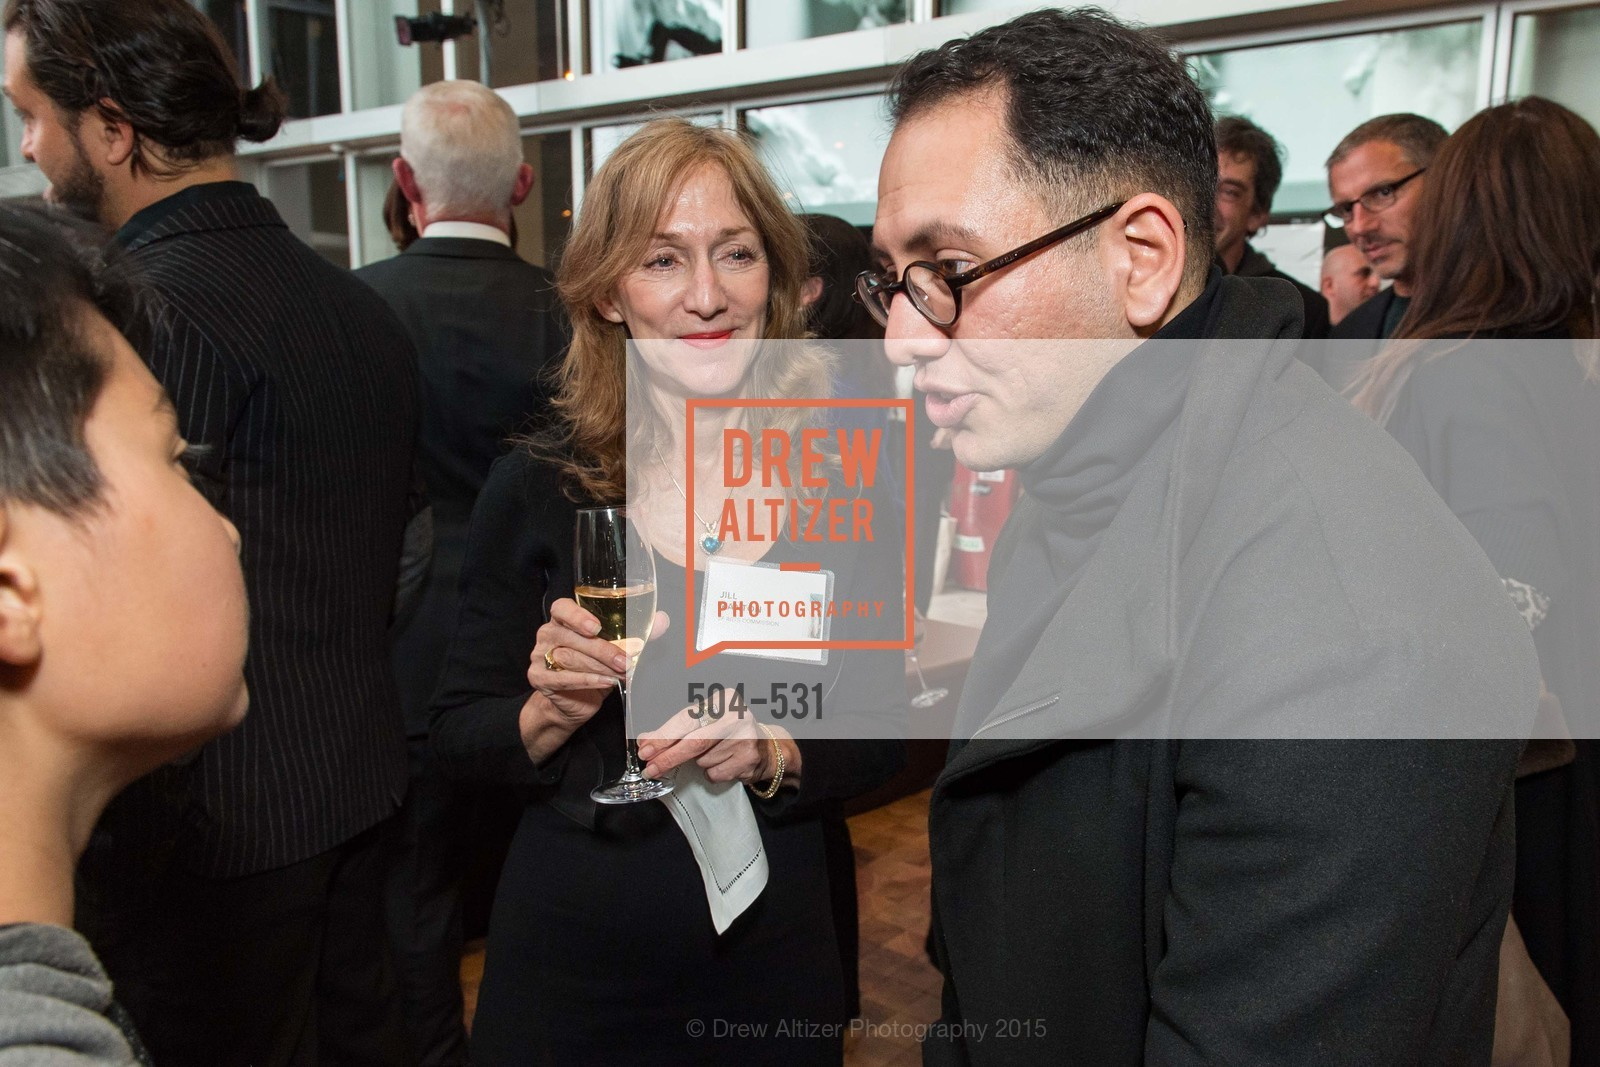 Jill Manton, Refik Anadol, Kilroy Unveiling Presents Virtual Depictions: San Francisco by Refik Anadol, 350 Mission Street. 350 Mission Street, November 16th, 2015,Drew Altizer, Drew Altizer Photography, full-service agency, private events, San Francisco photographer, photographer california